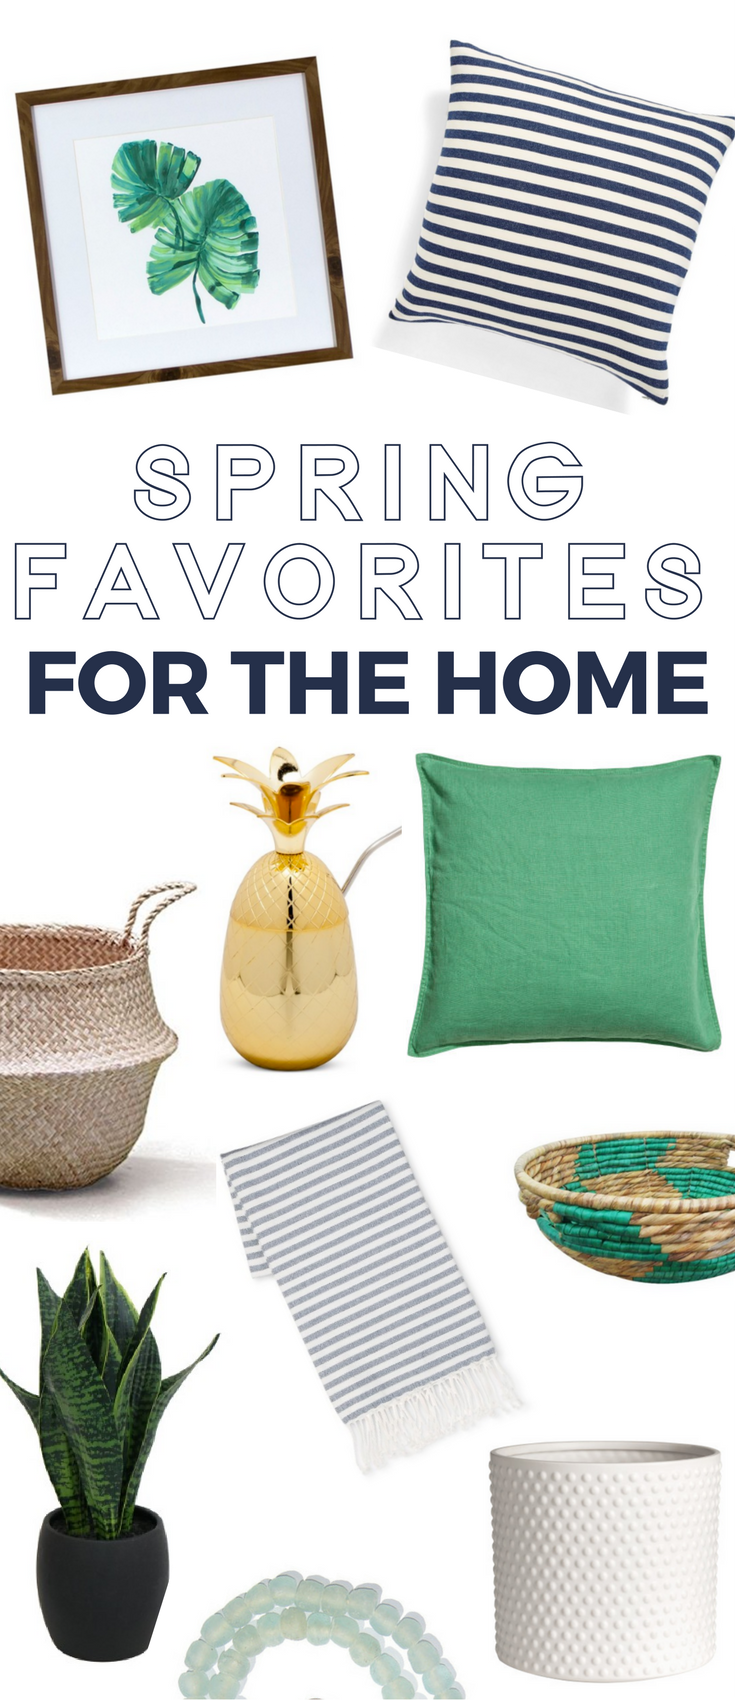 10 Spring Home Decor Items That Will Refresh Your Home This Season